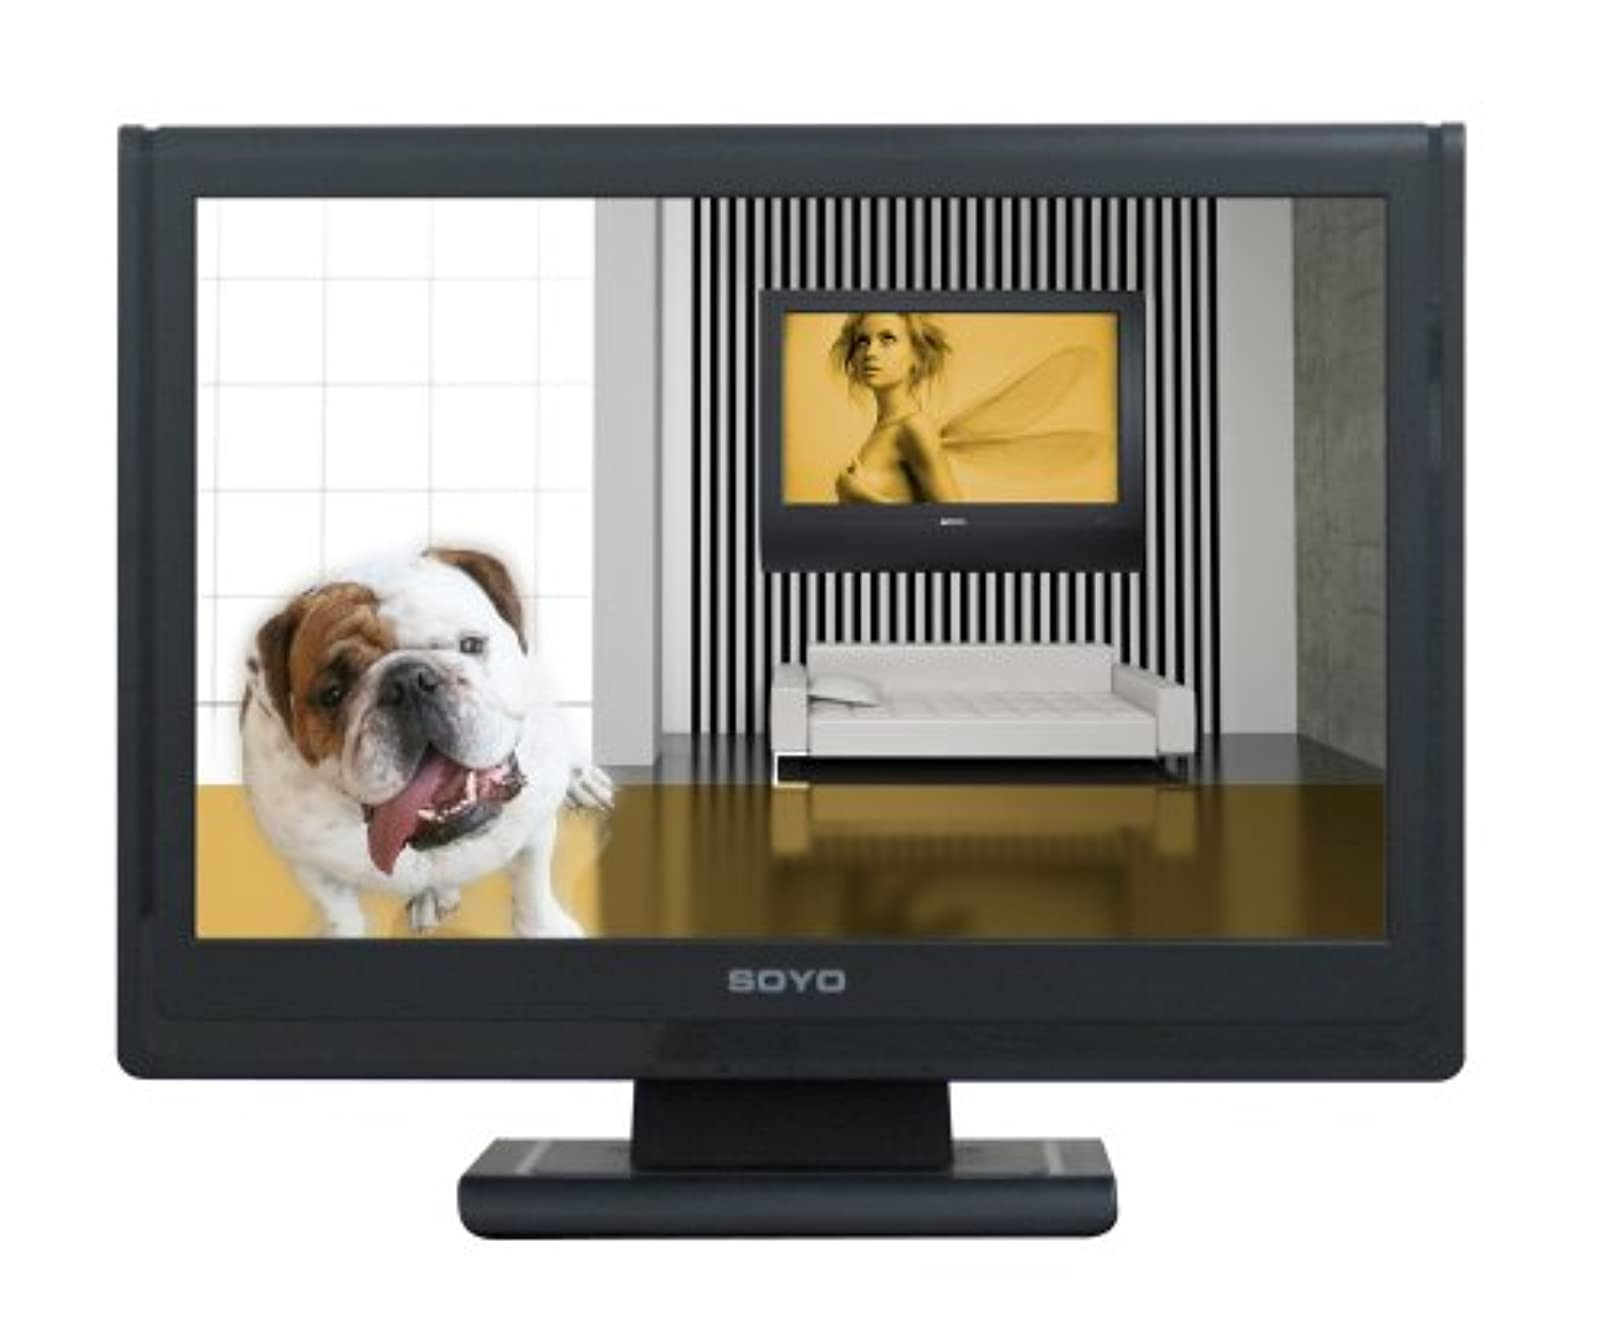 Soyo DYLM1986 19 Inch Wide TFT LCD Monitor With Speakers